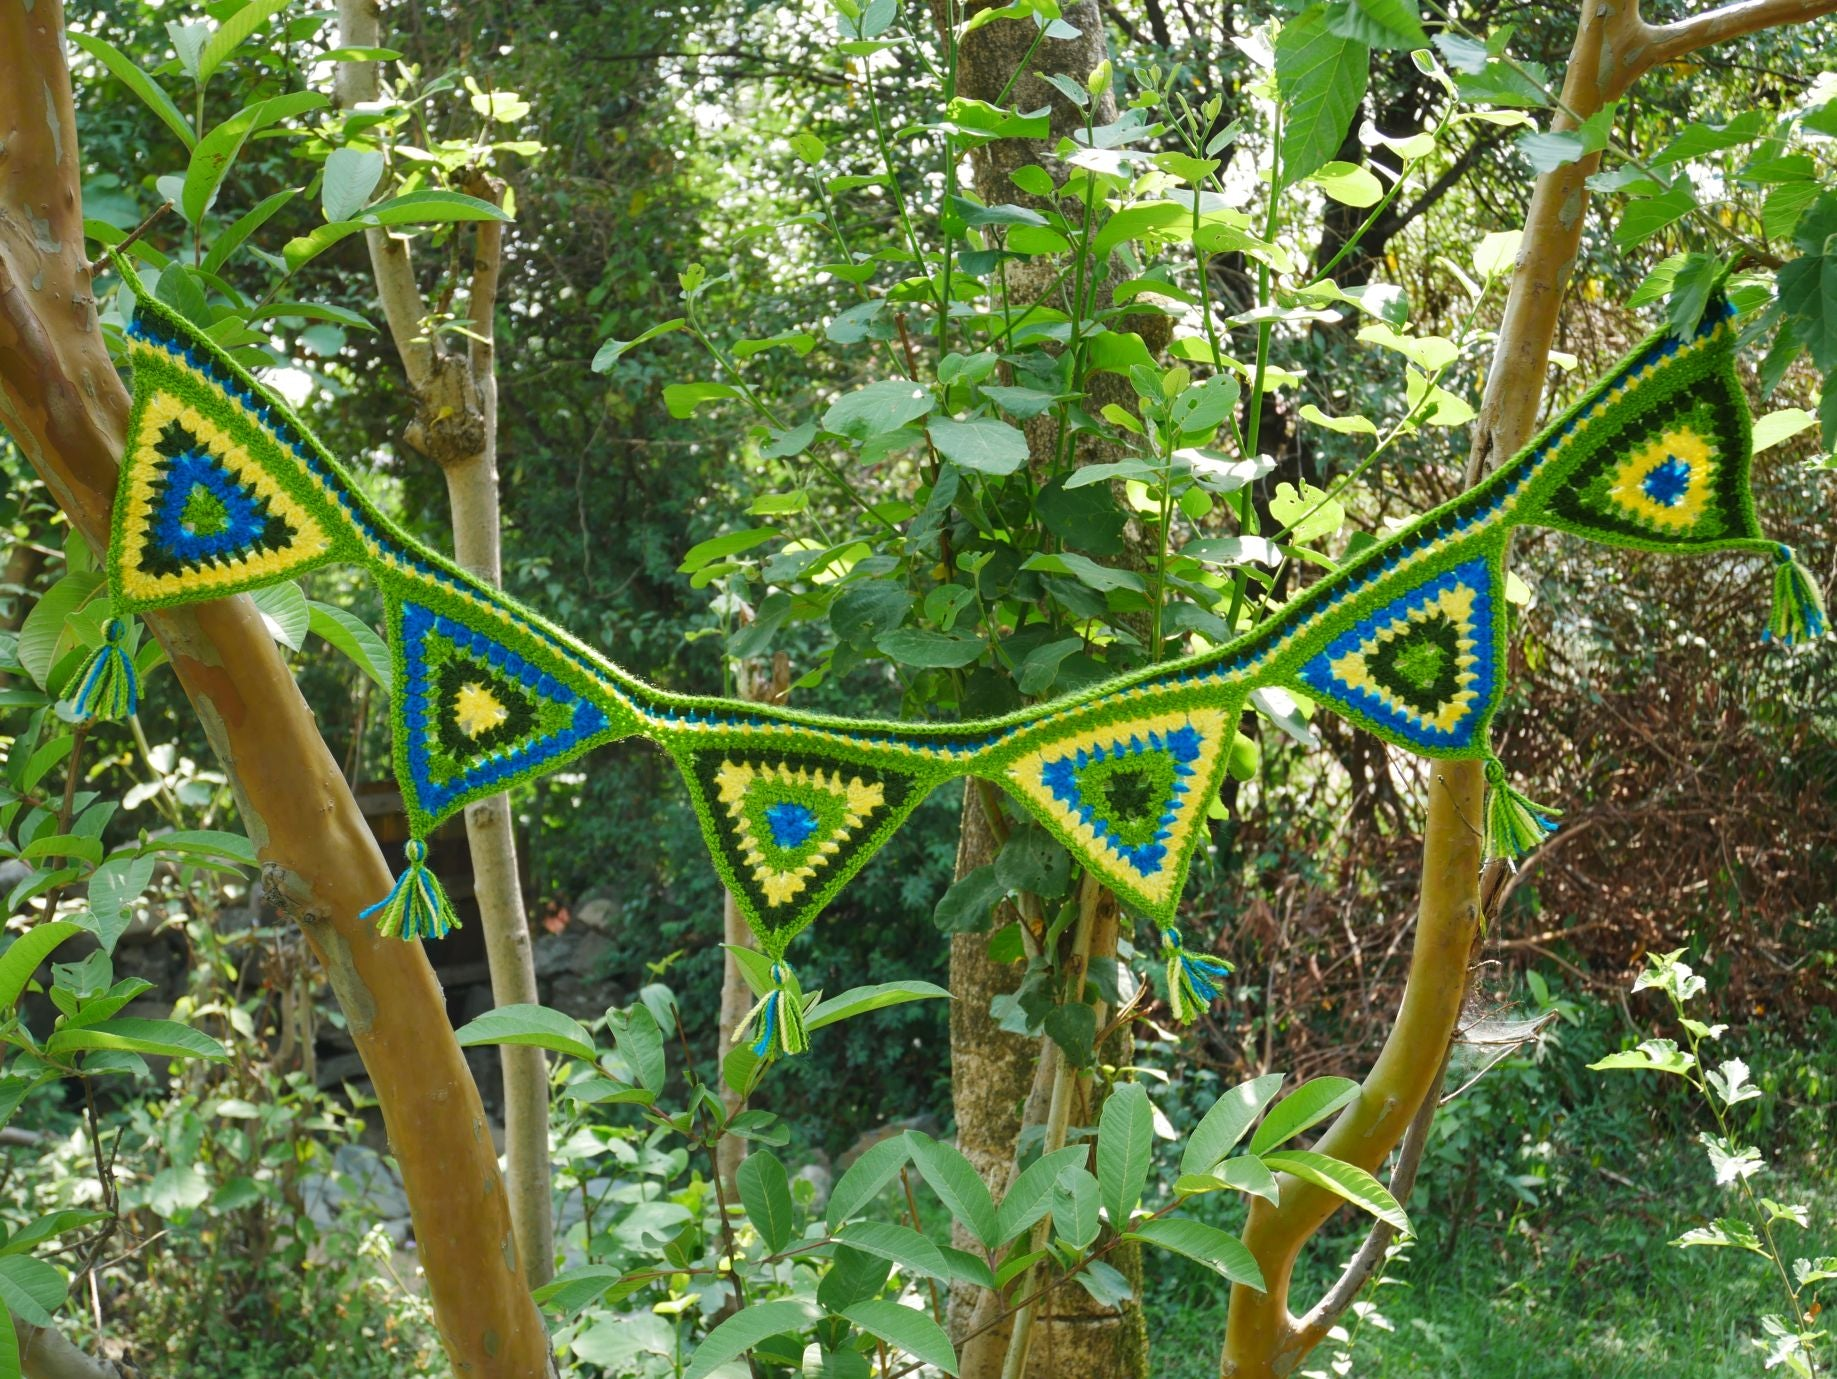 Crochet door hanging-  green door garland or window valence - hippie decor - gypsy curtain